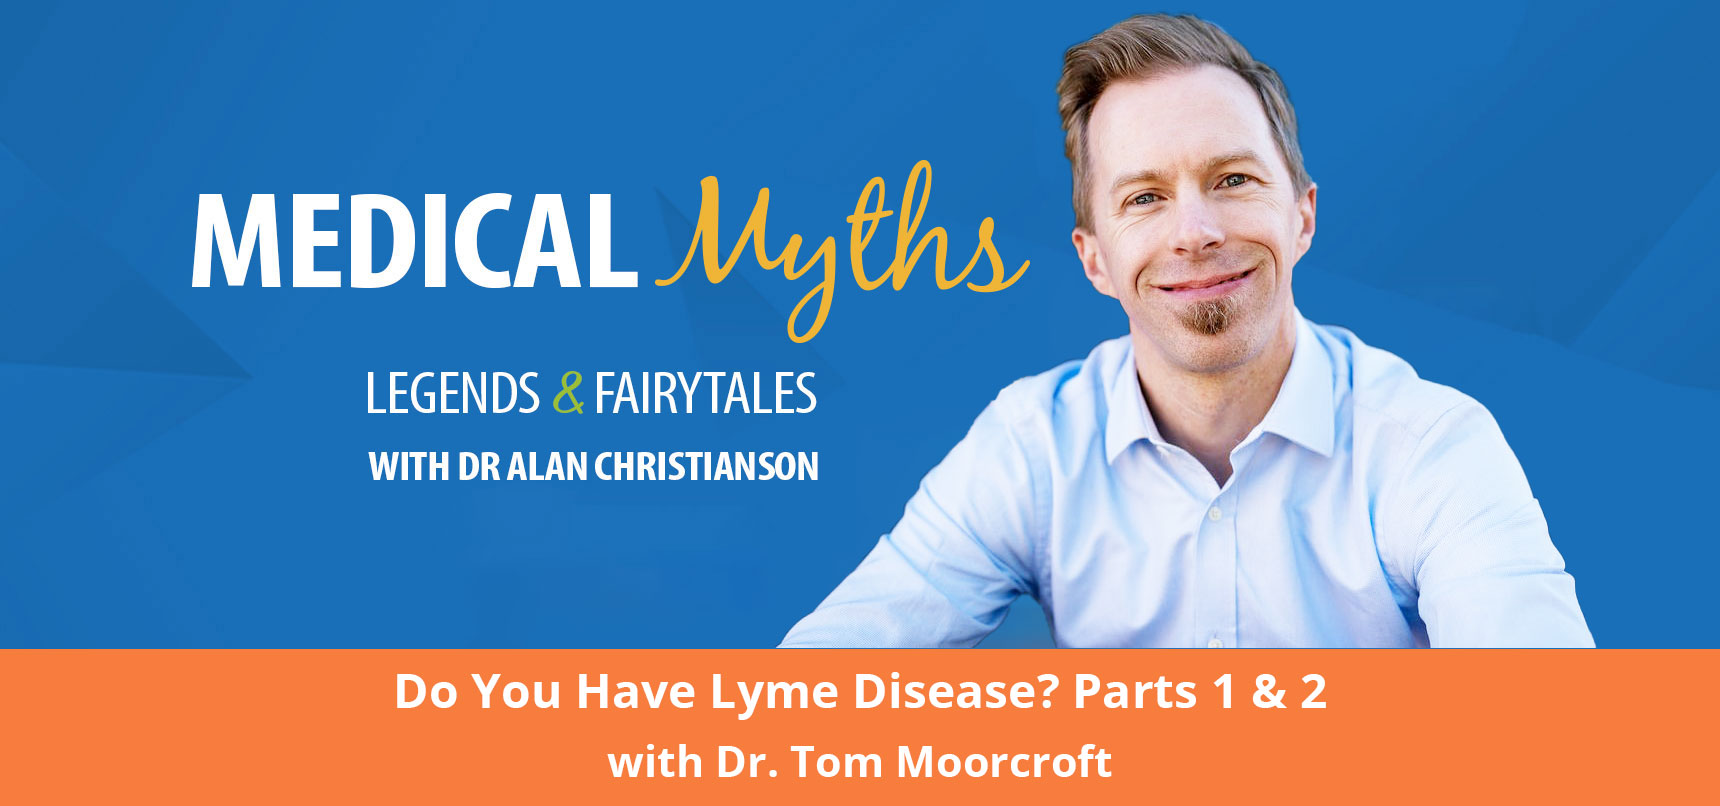 Do You Have Lyme Disease? Parts 1 & 2 with Dr. Tom Moorcroft